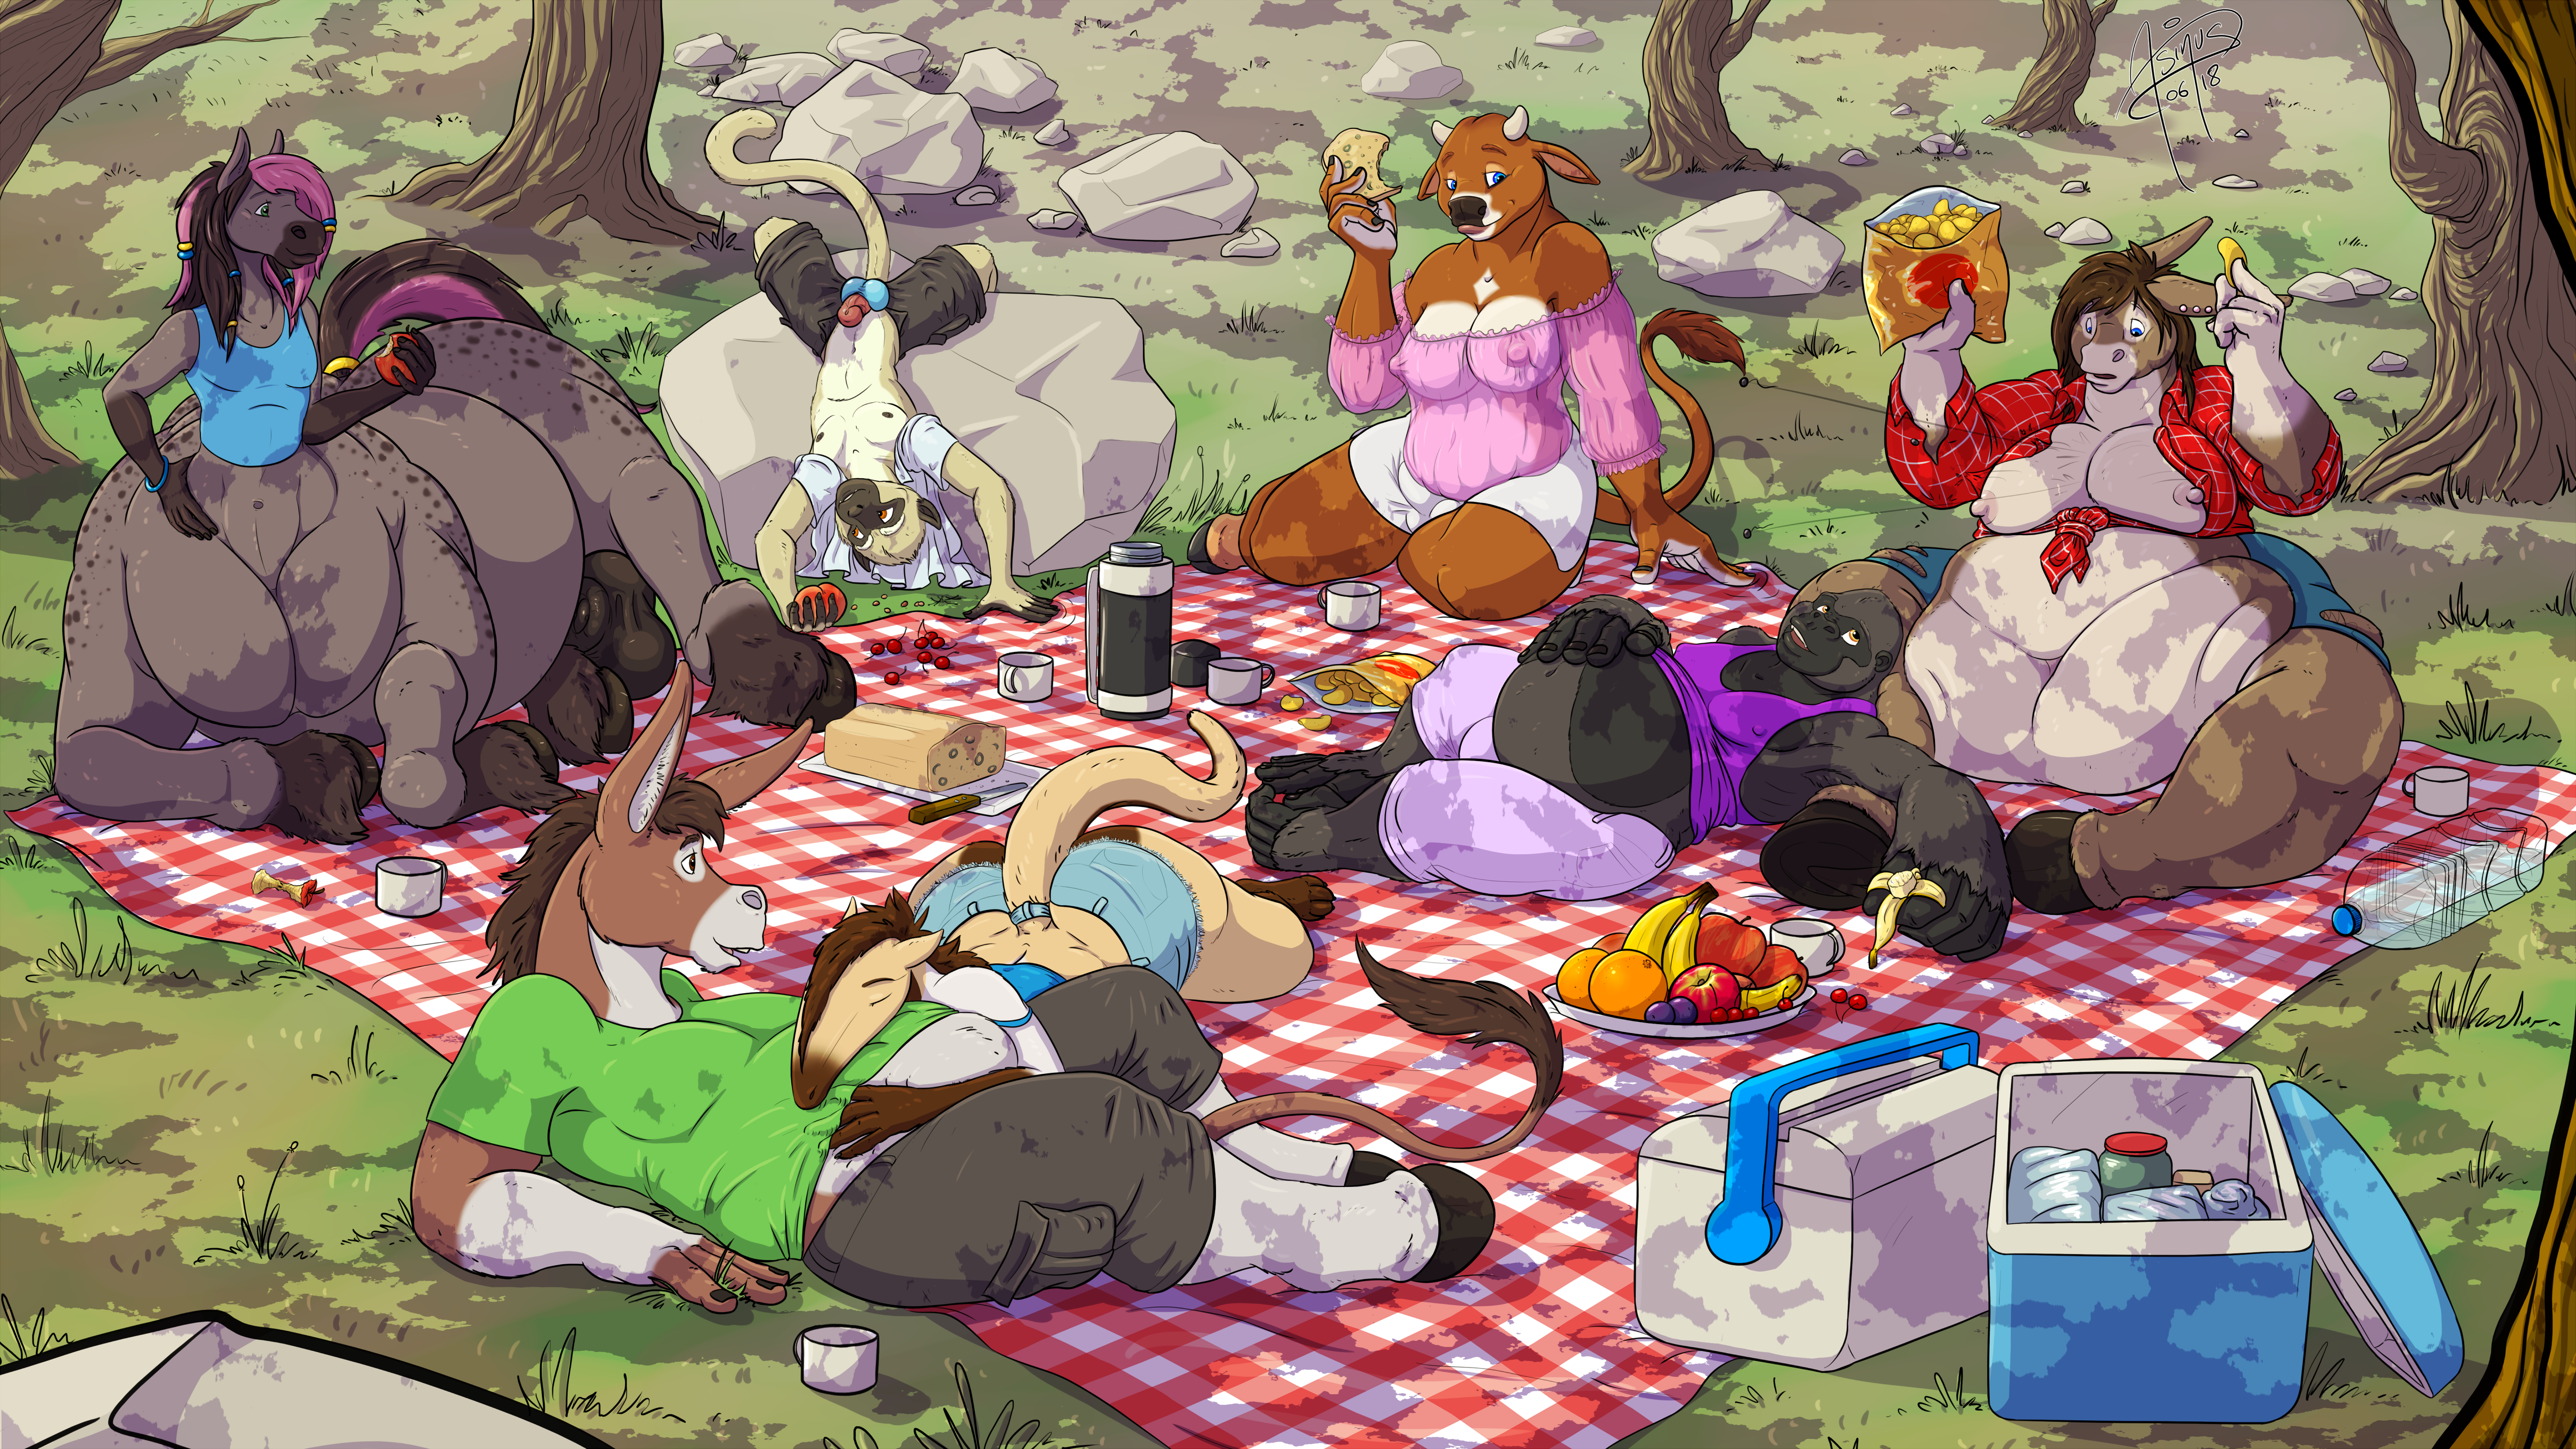 1529013331.asinusadlyram_picnic_all_together_70